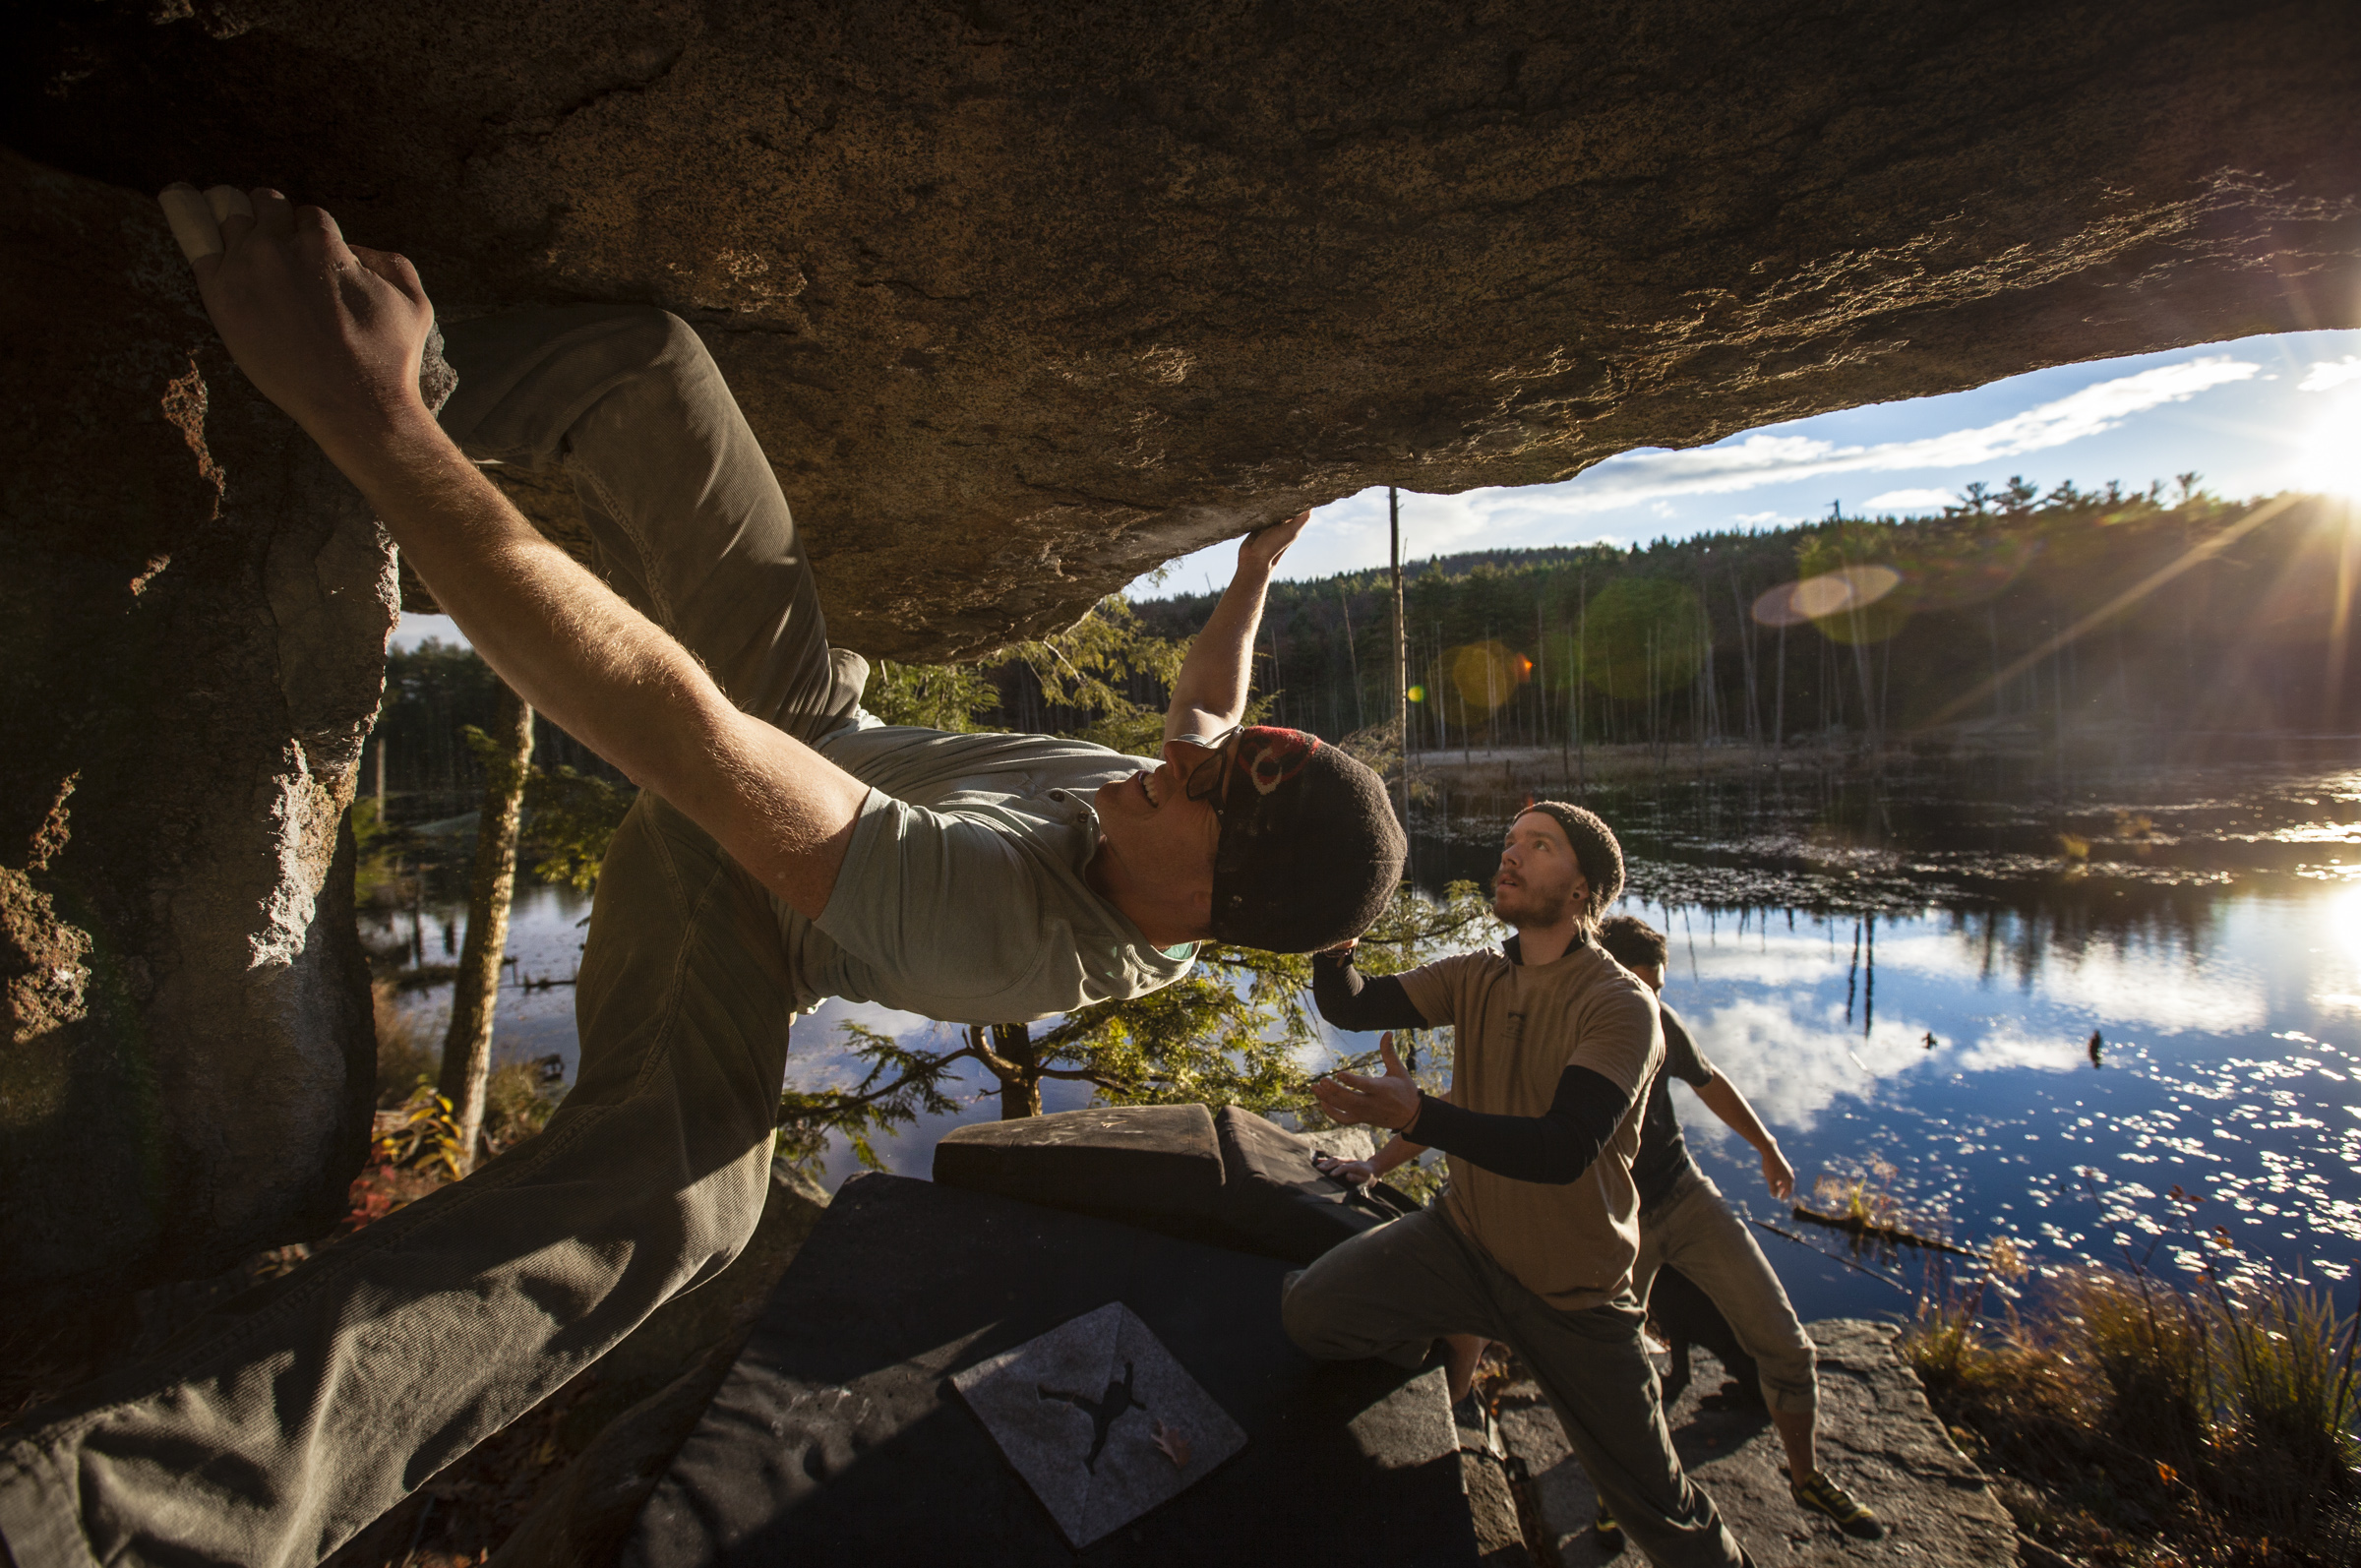 Steve Thunstrom climbing Overlooked Boulder Problem at Pawtuckaway State Park